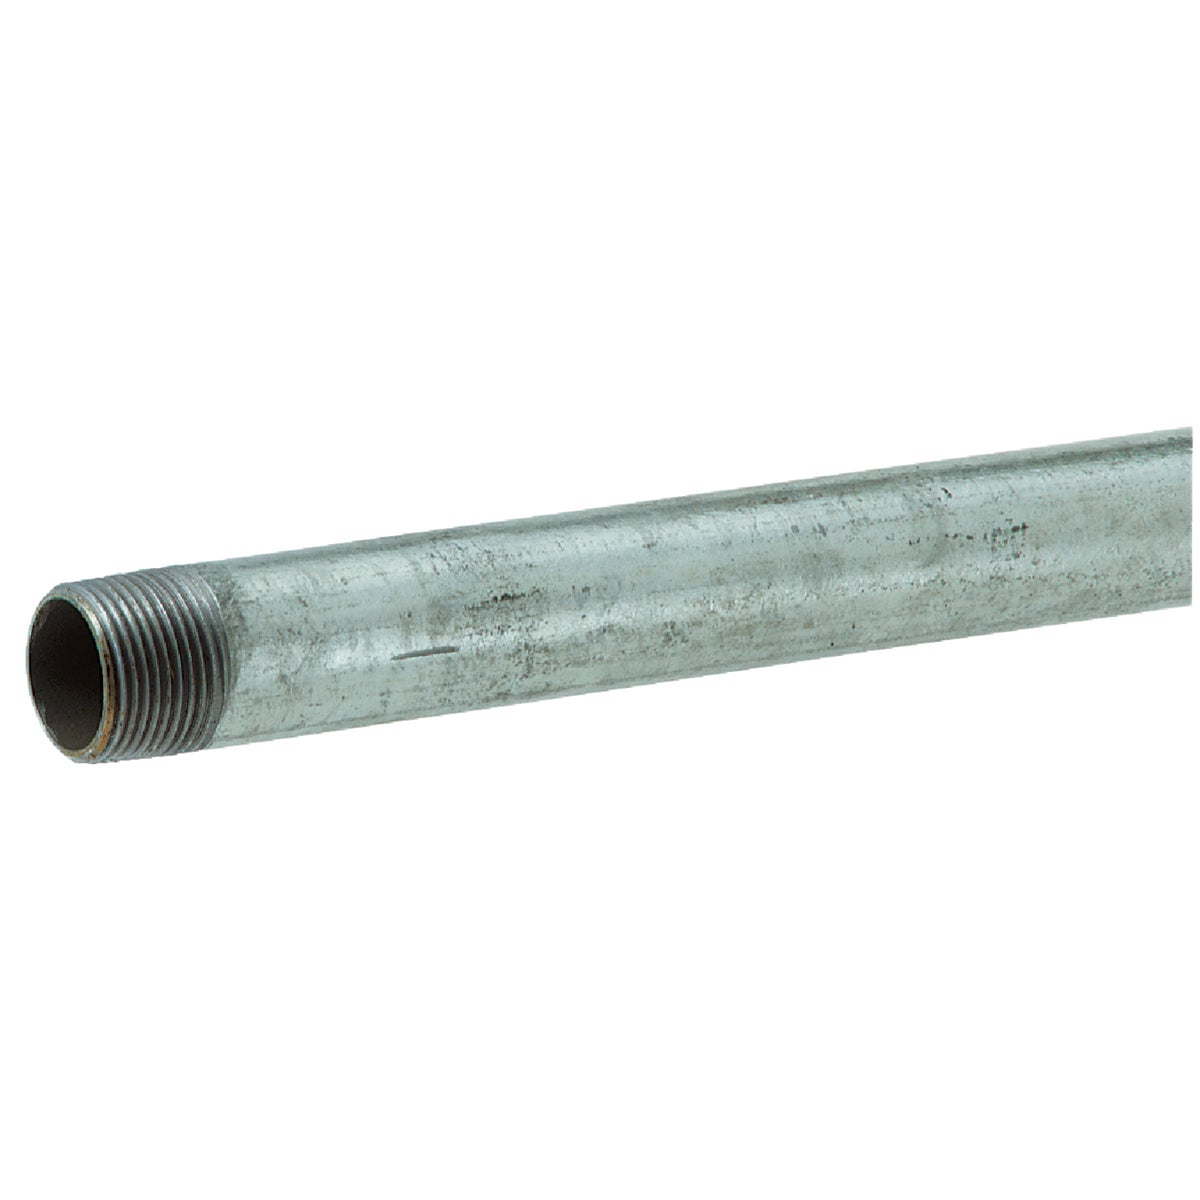 1-1/2X48GALV RDI-CT PIPE - 11/2X48 by Southland Pipe Nippl